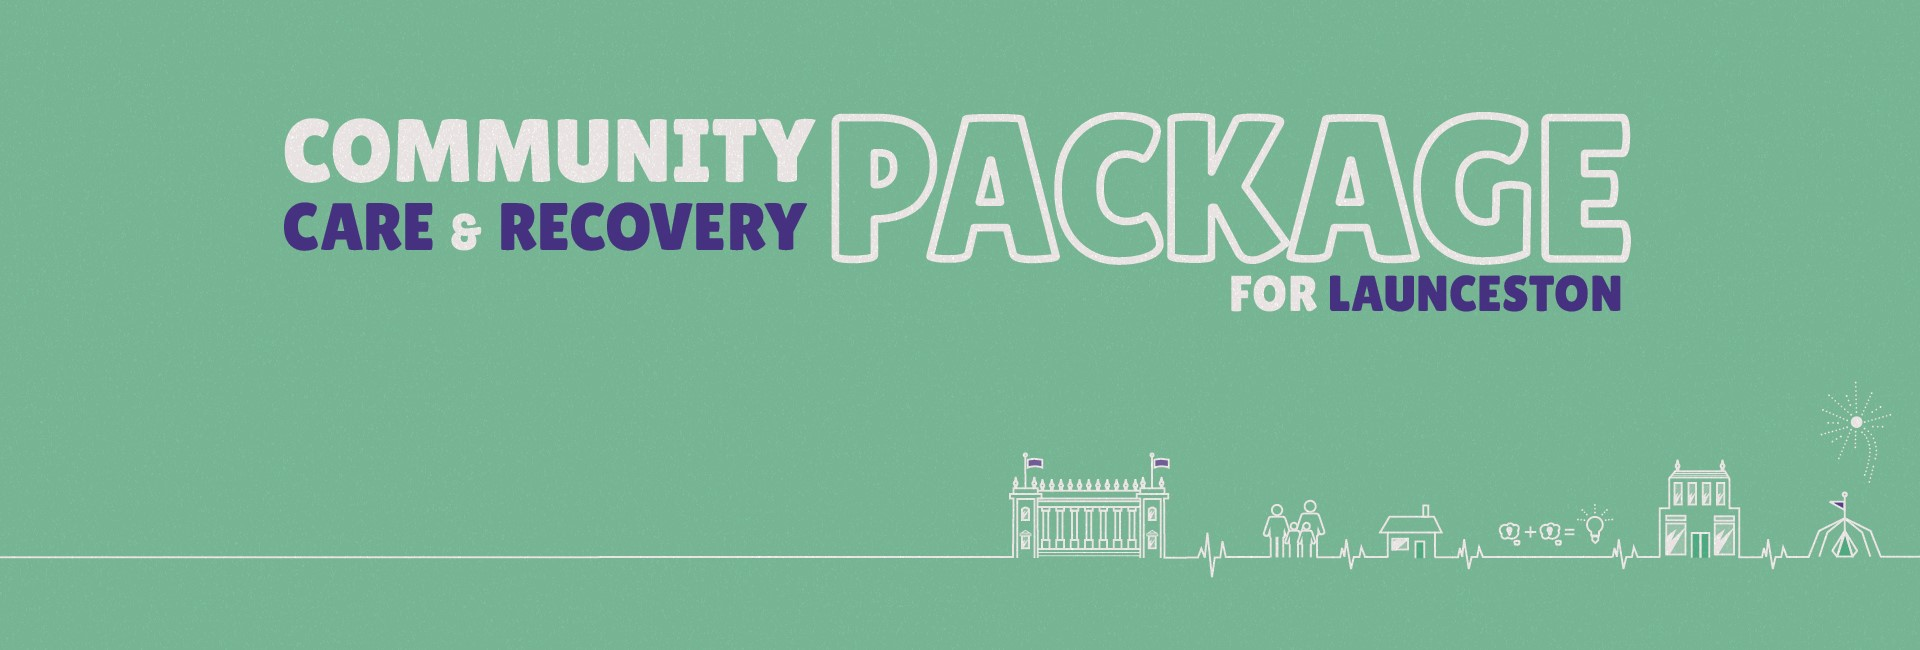 City of Launceston Community Care Package 2020 COVID19.jpg